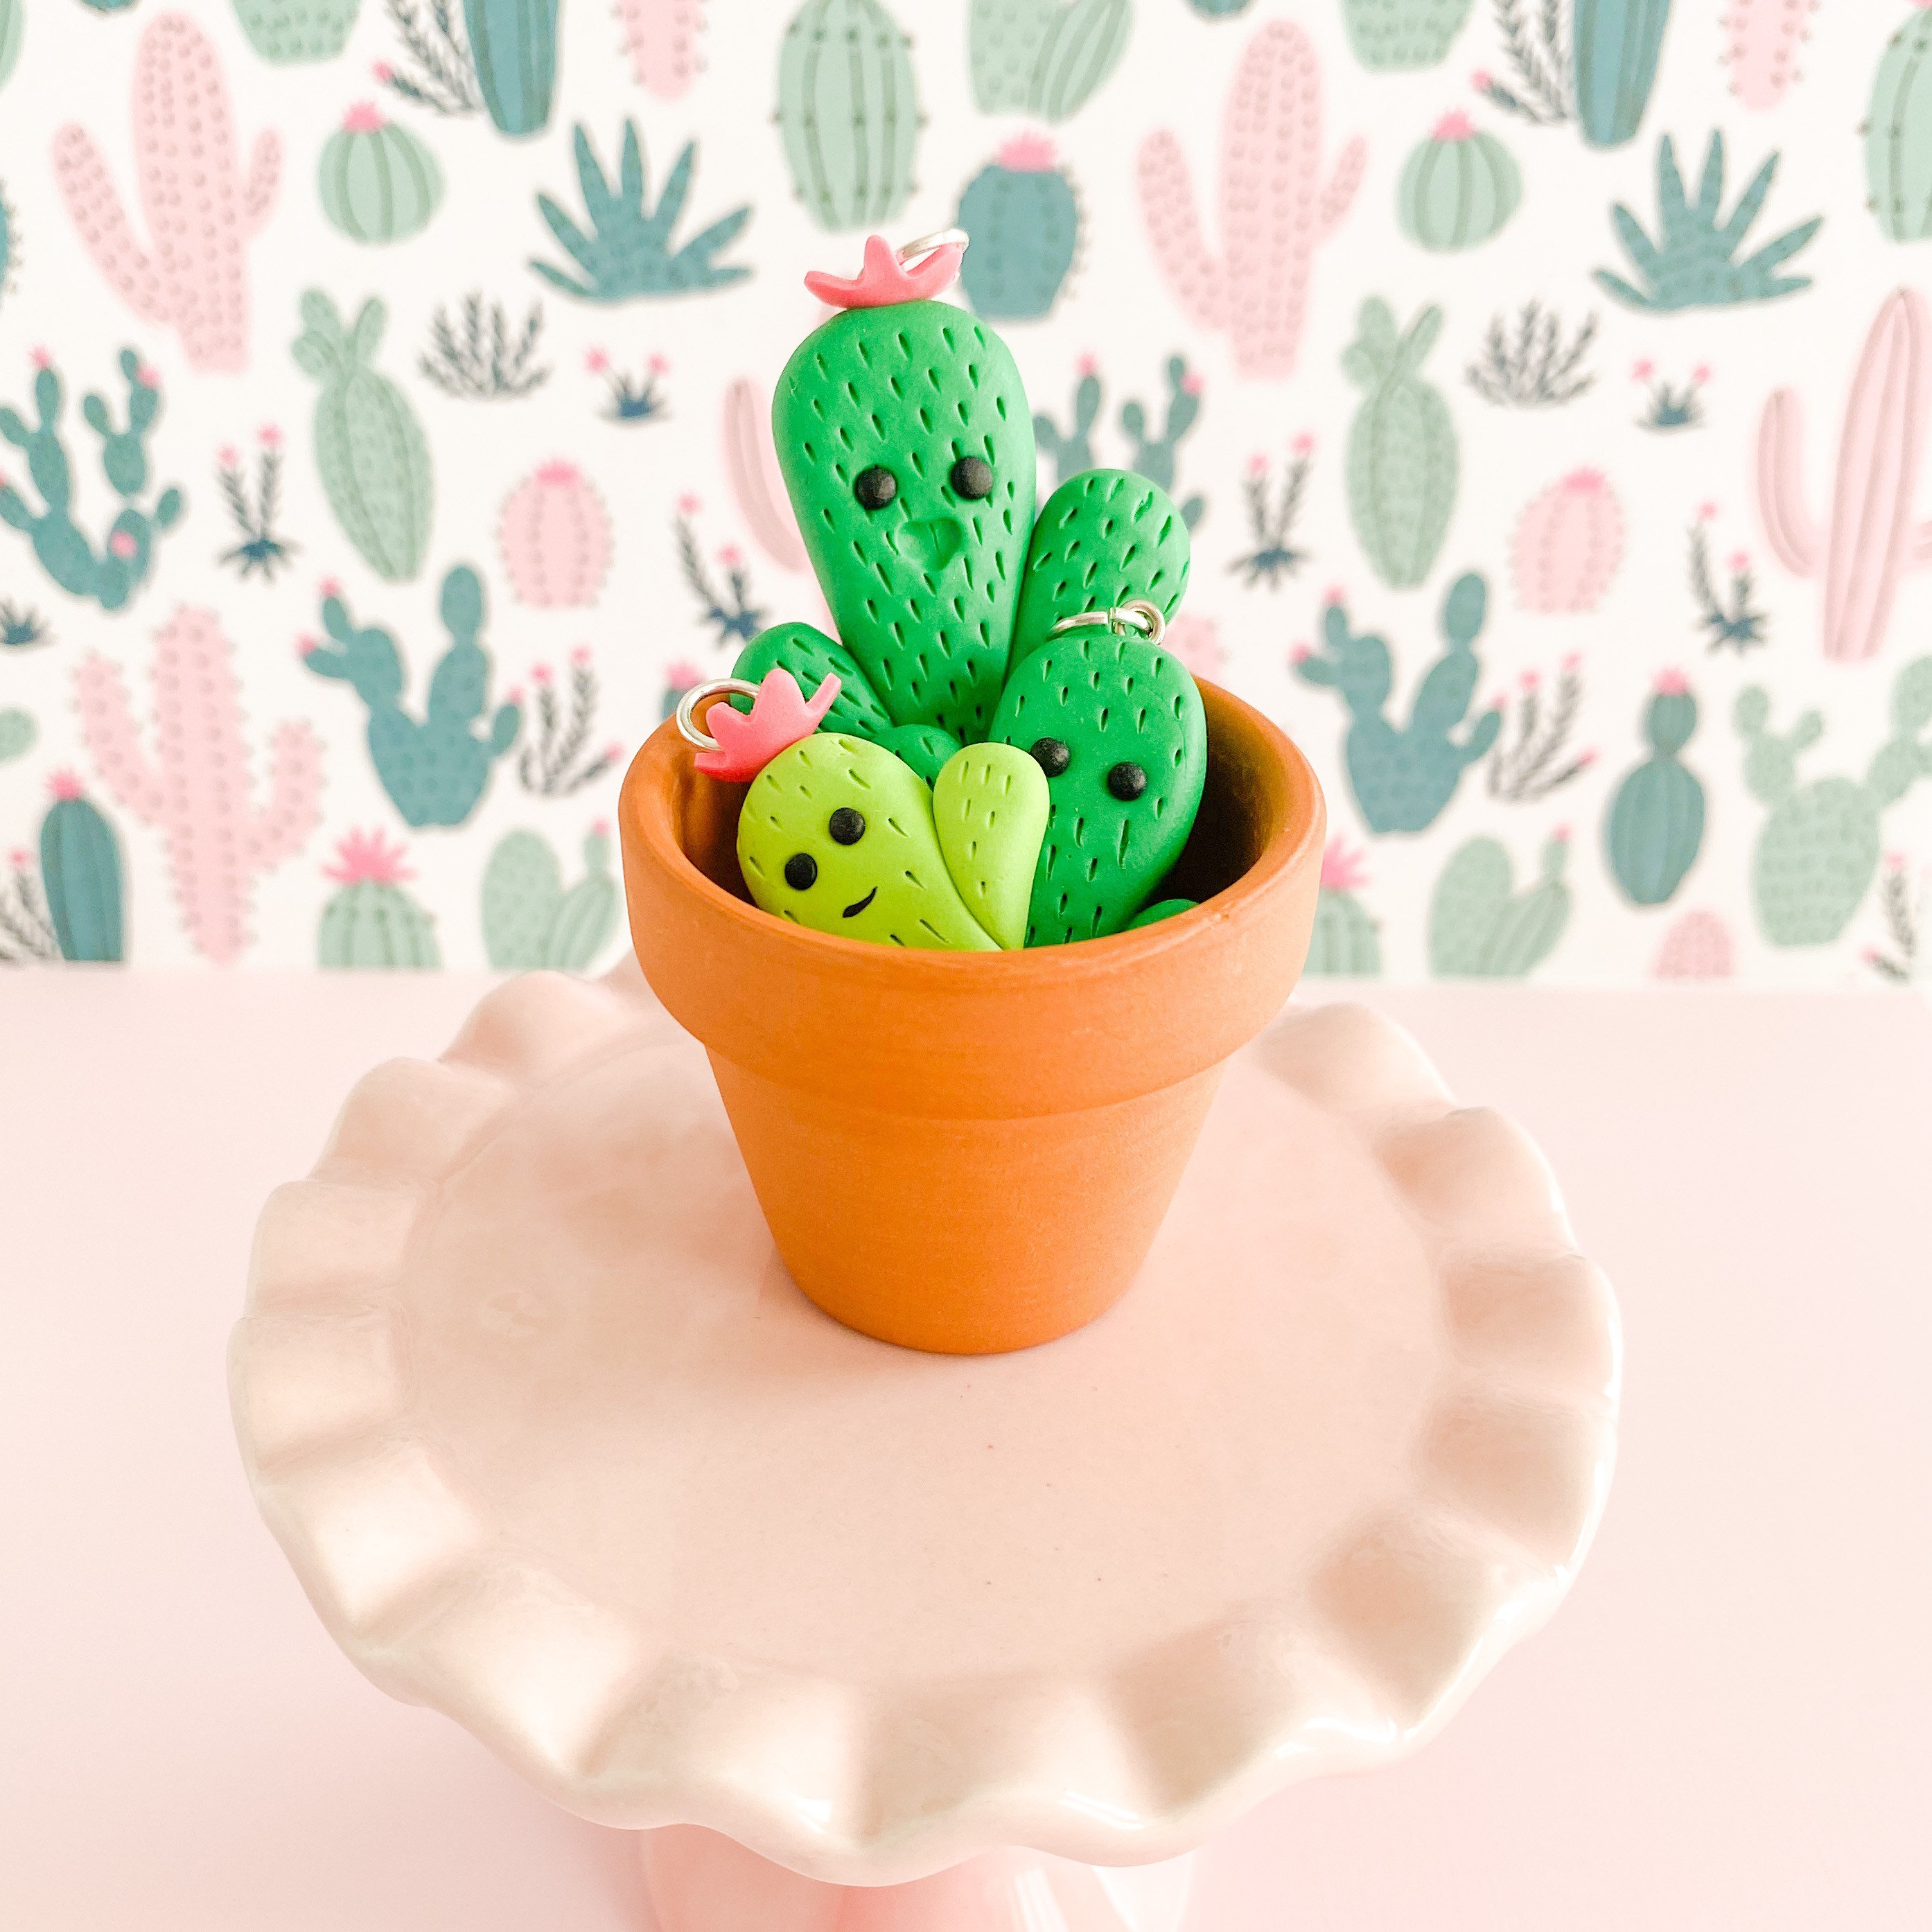 fireflyFrippery Kawaii Cactus Charms in Miniature Terra Cotta Pot on Pink Display